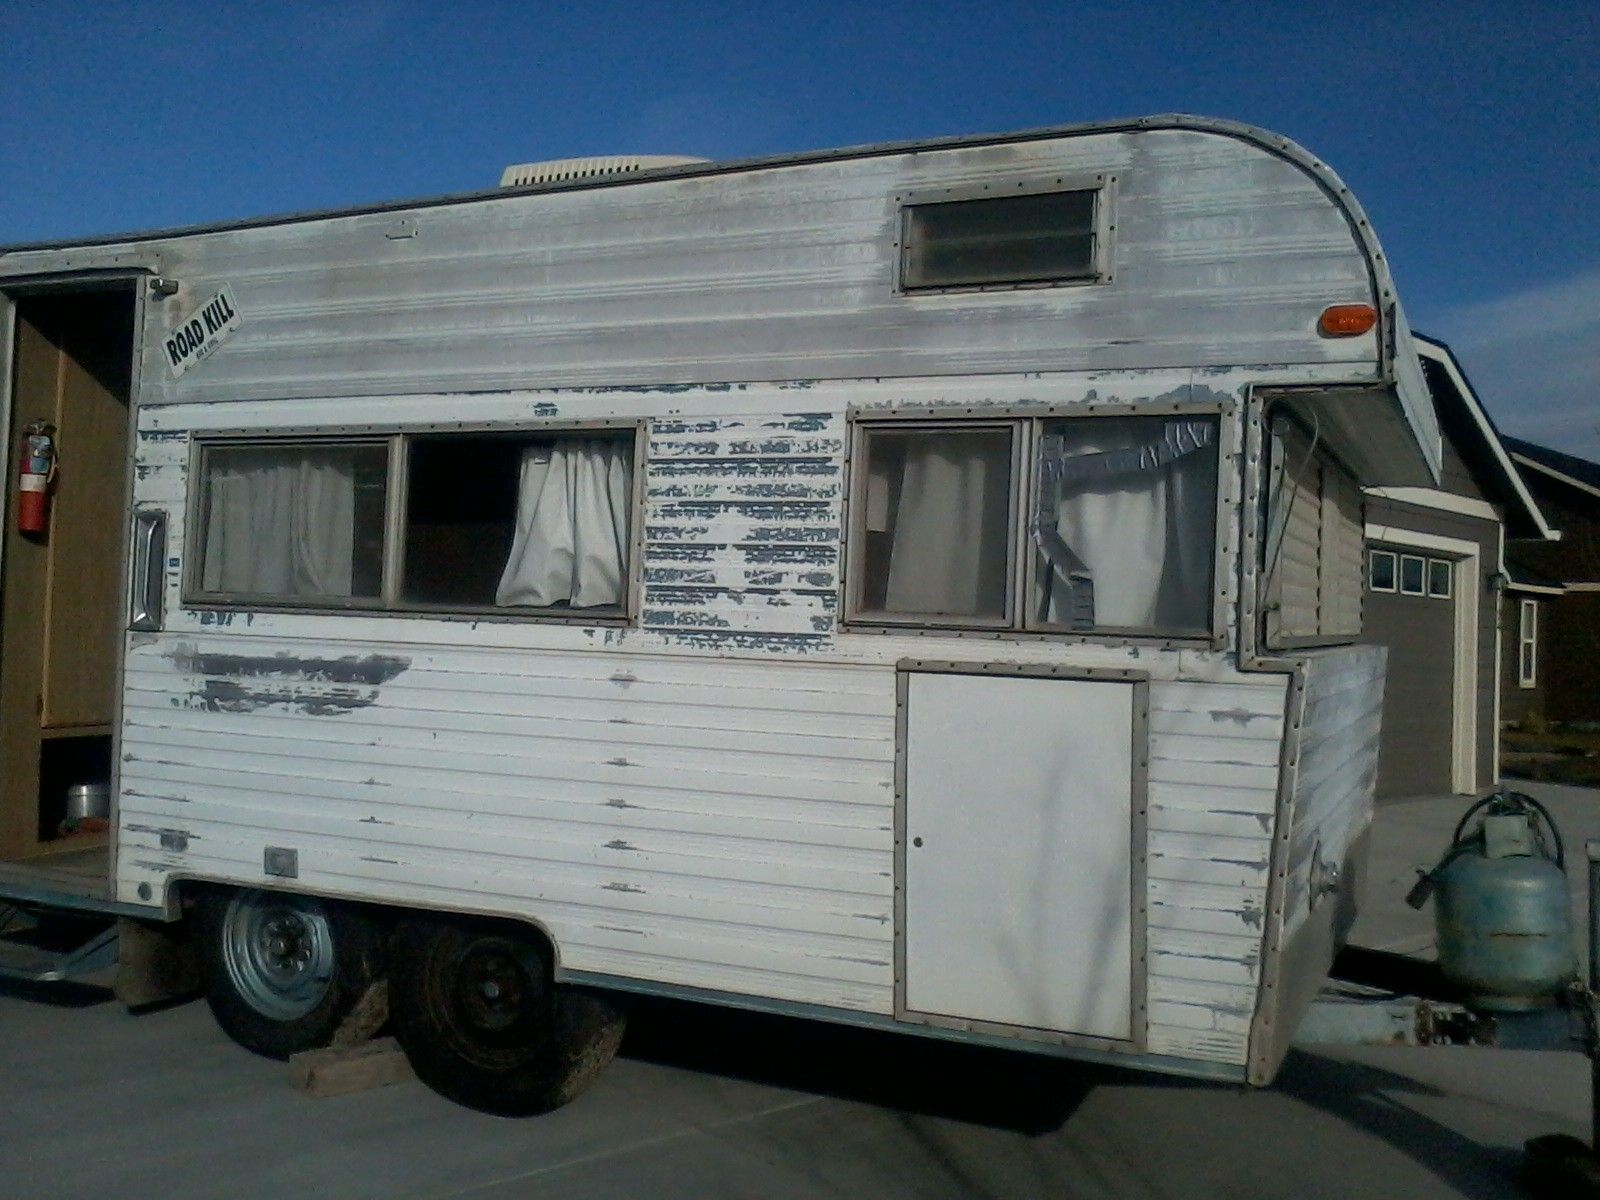 Fireball Travel Trailer For Sale